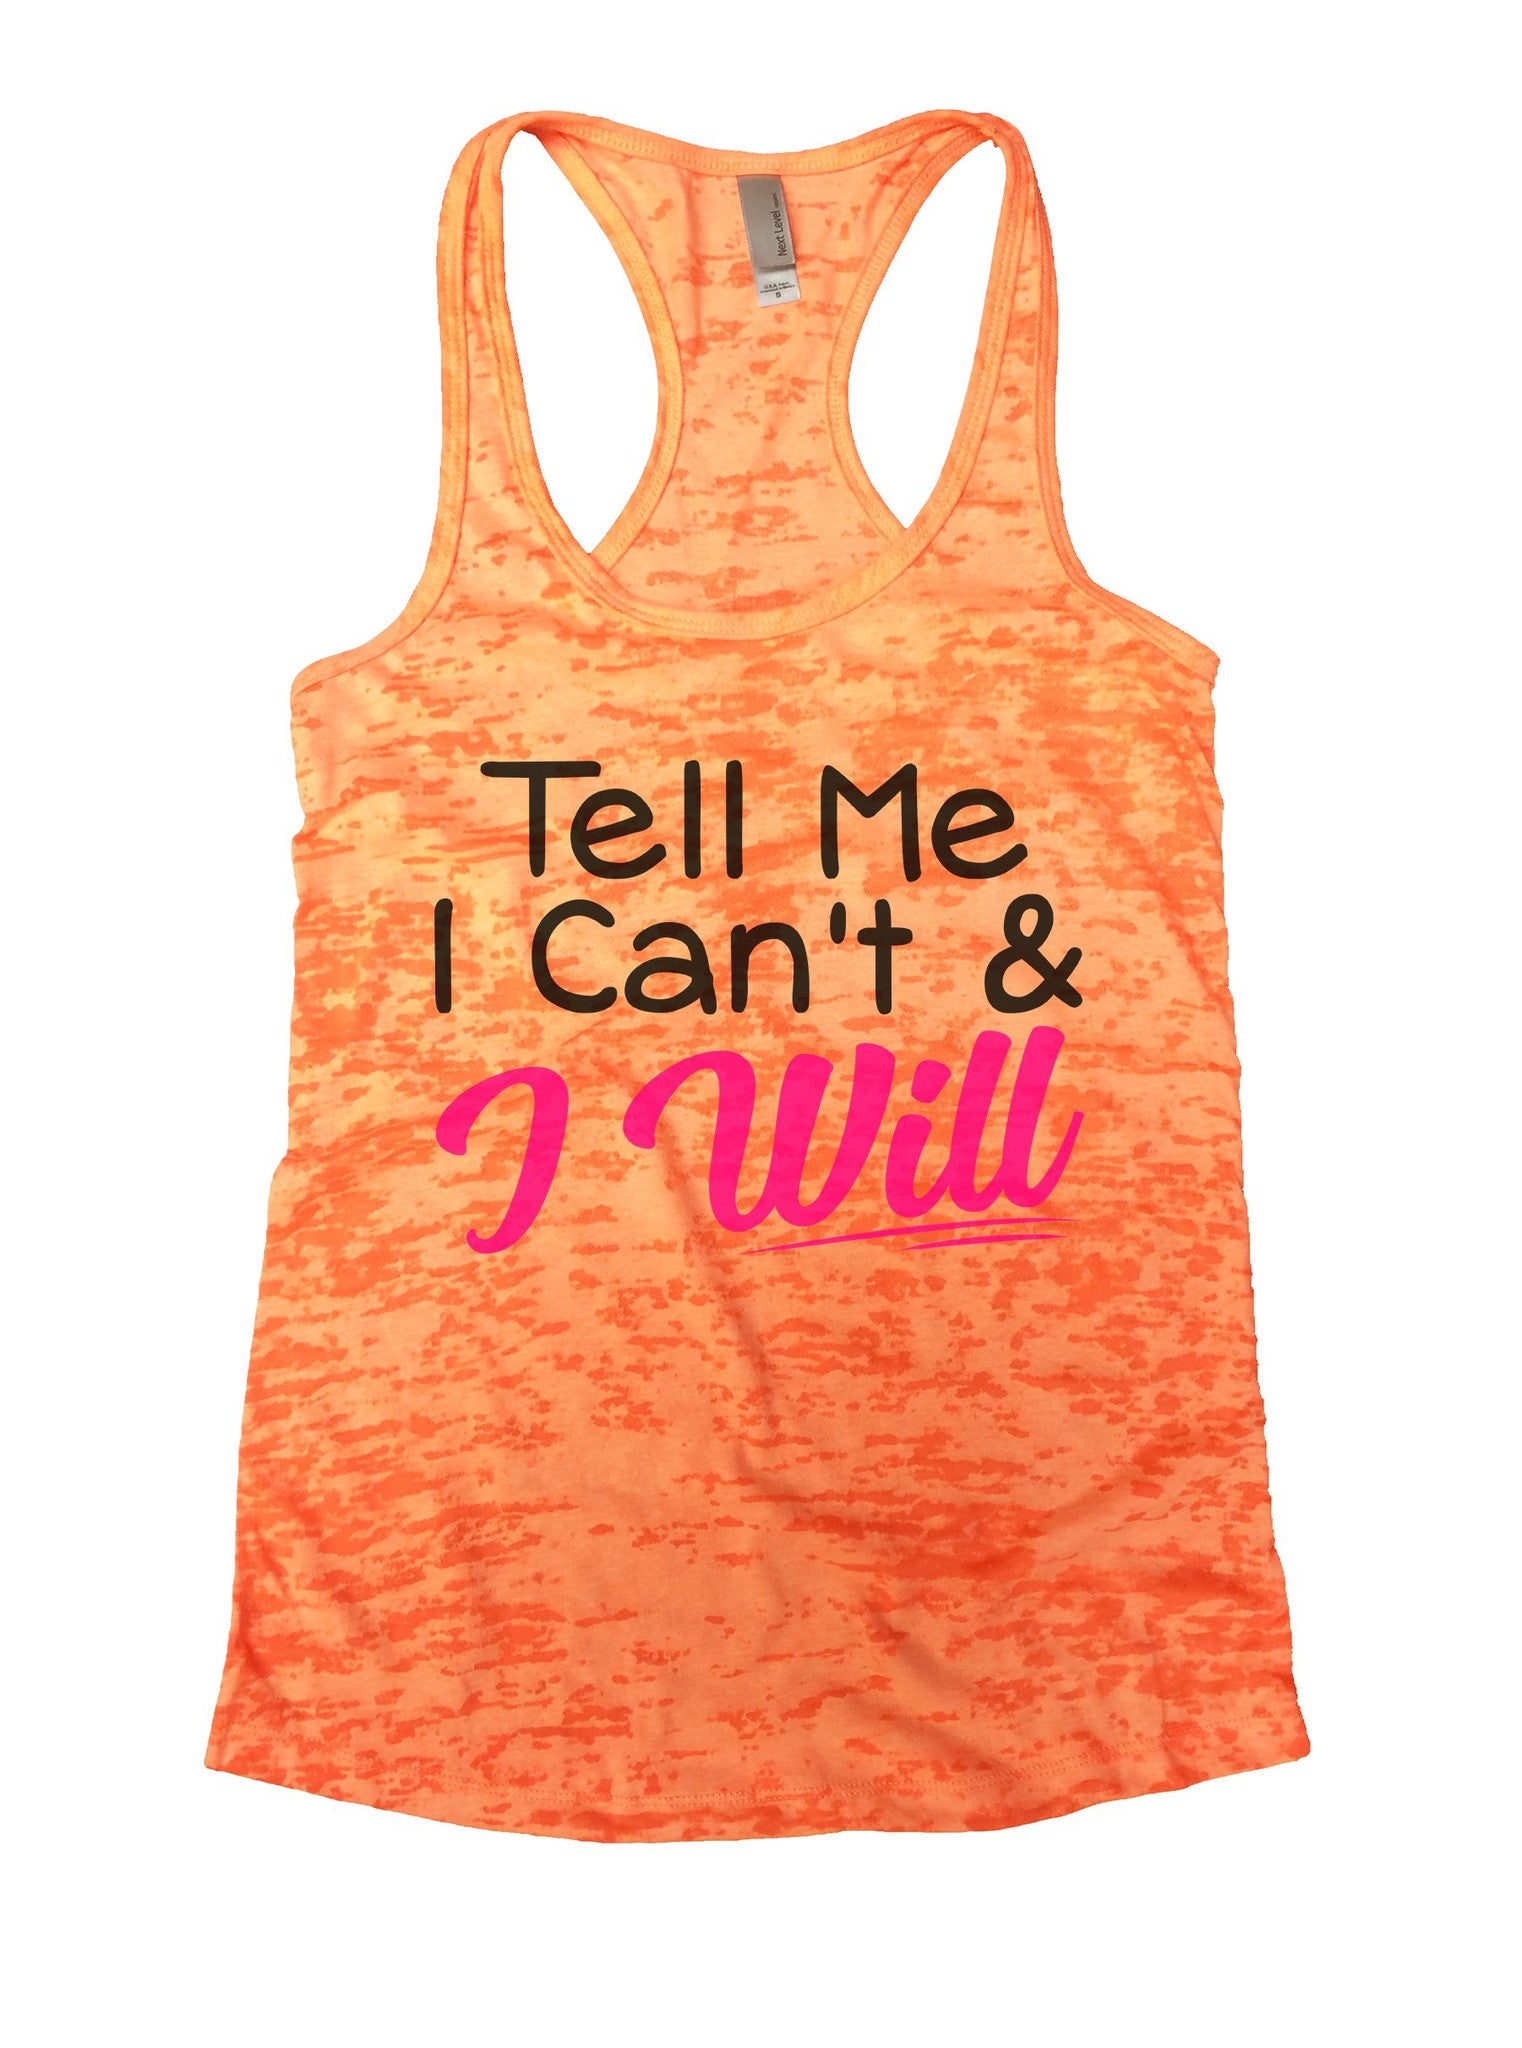 Tell Me I Can't & I Will Burnout Tank Top By BurnoutTankTops.com - 1071 - Funny Shirts Tank Tops Burnouts and Triblends  - 3